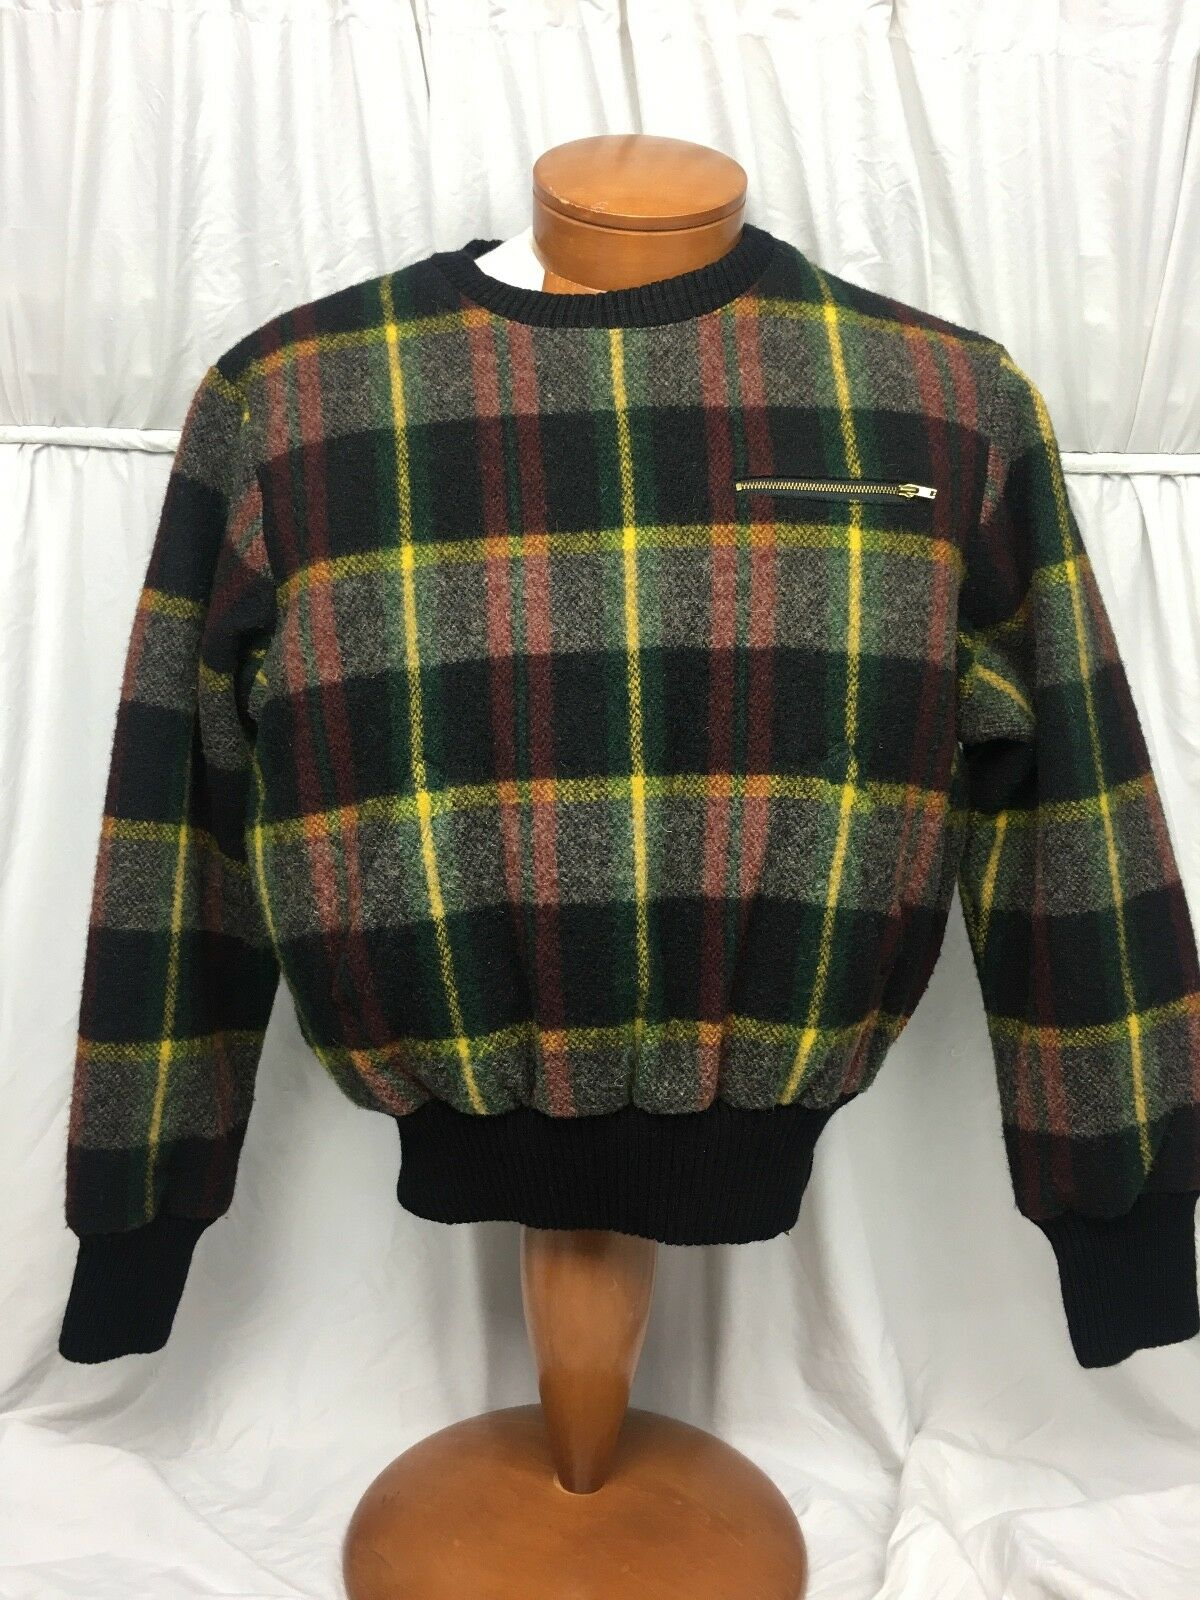 Ralph Lauren  RARE Plaid Ski schweißer w  Side Zipper & Puffer Inside groß